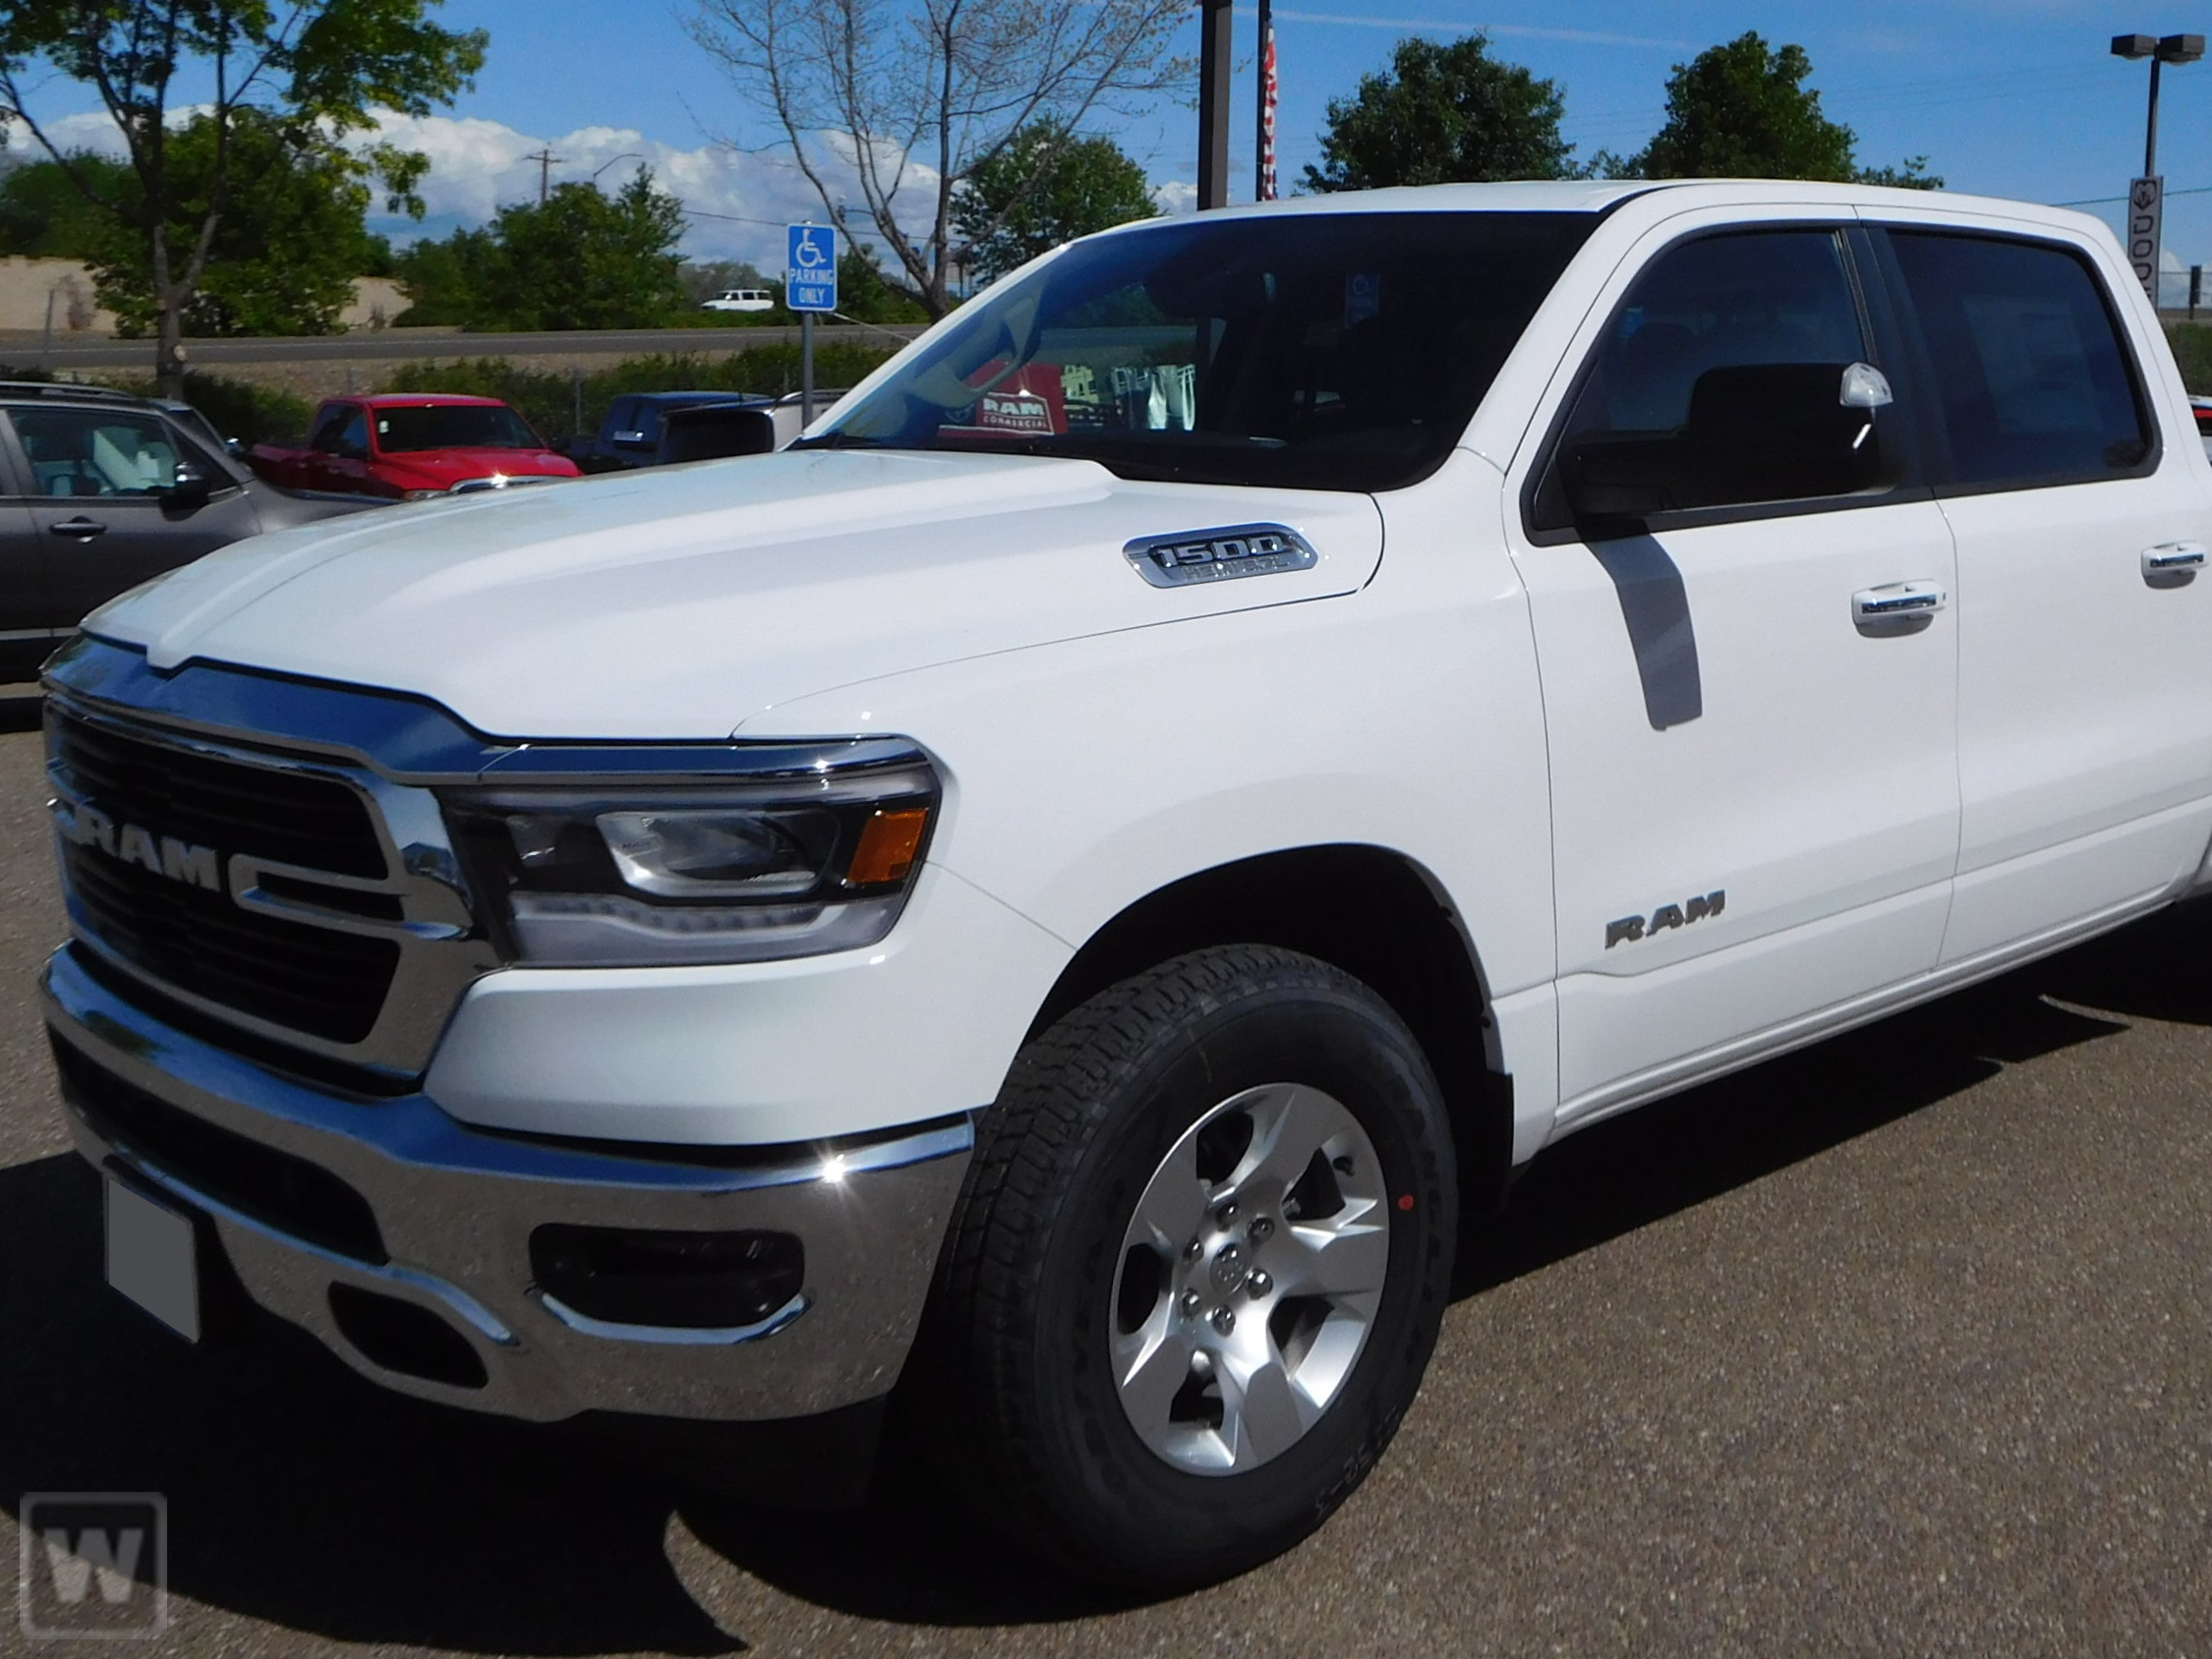 2019 Ram 1500 Crew Cab 4x4, Pickup #N11033 - photo 1